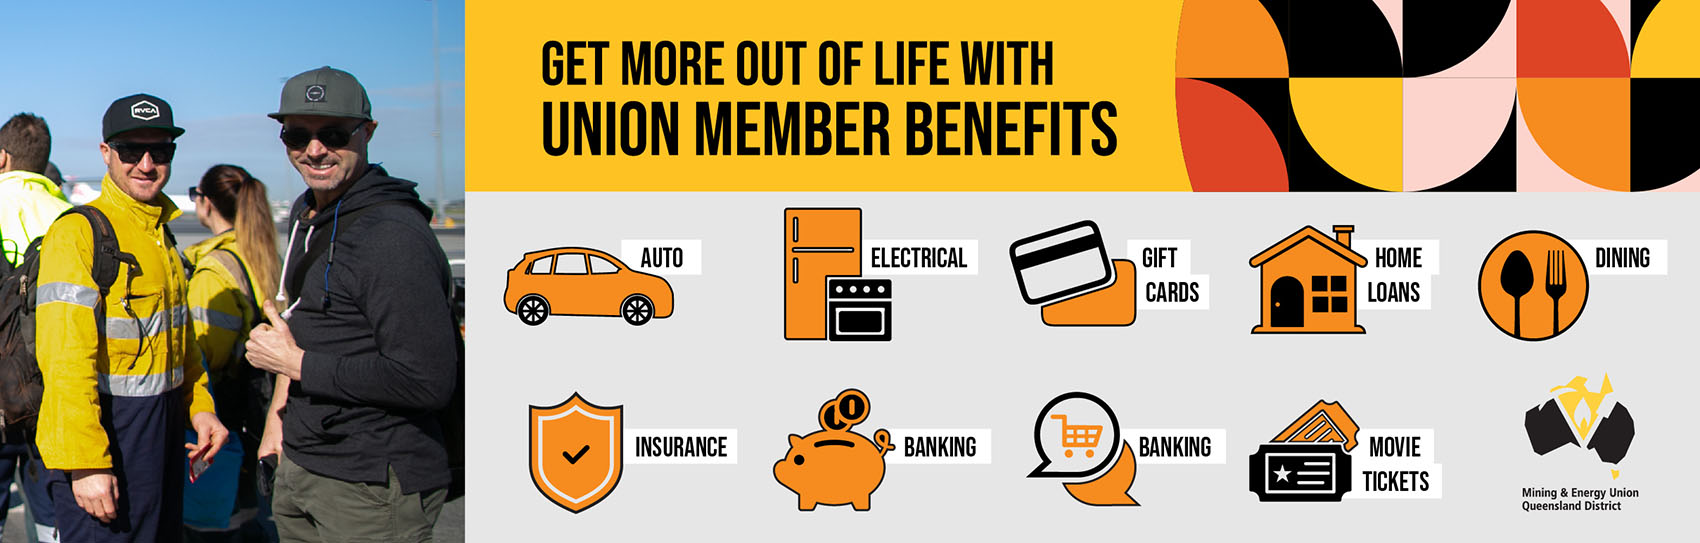 benefits of being a member of the mining & energy union